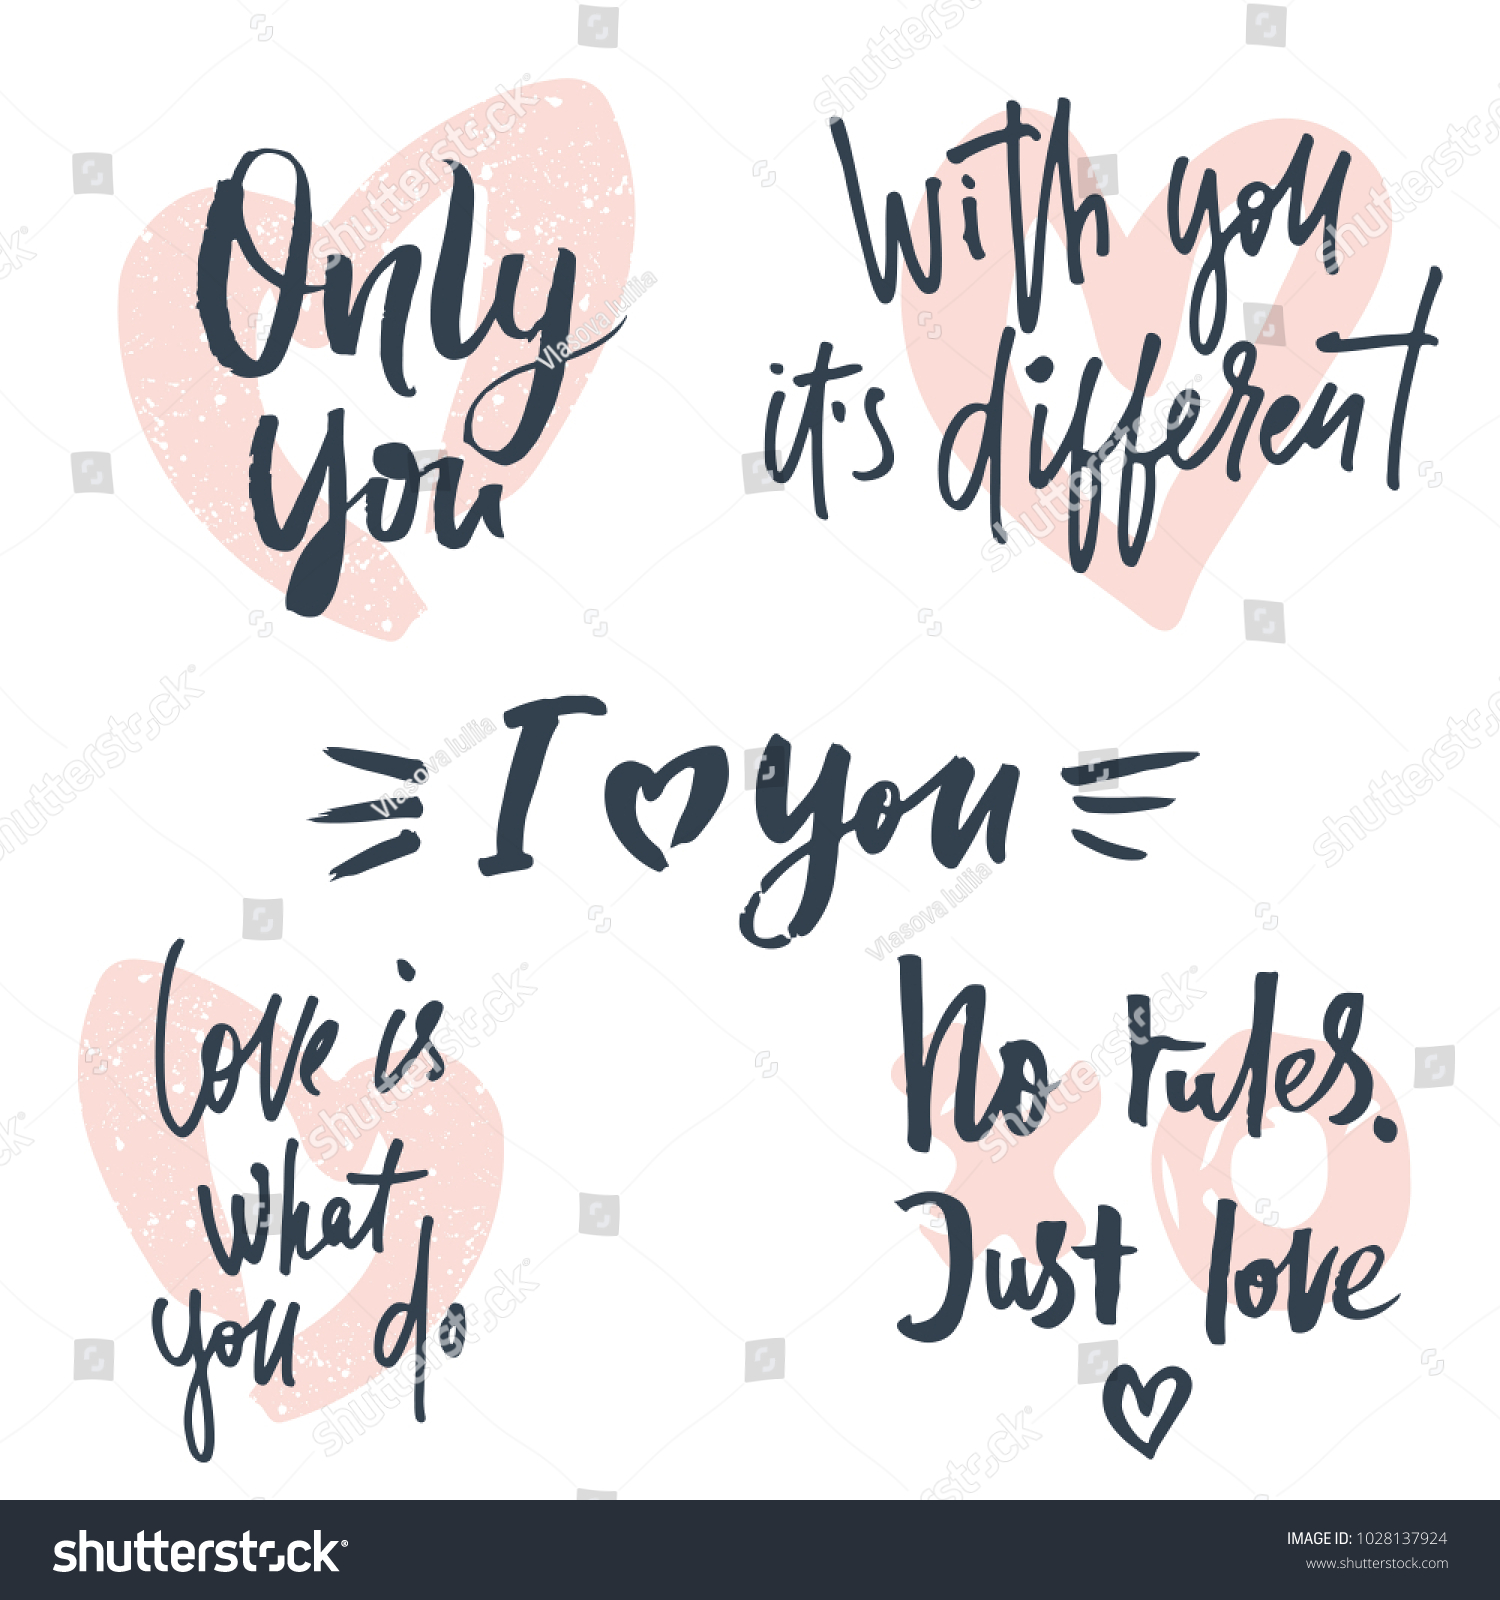 Vector illustration love quotes text greeting stock vector vector illustration of love quotes text for greeting card banner gift badge poster kristyandbryce Images